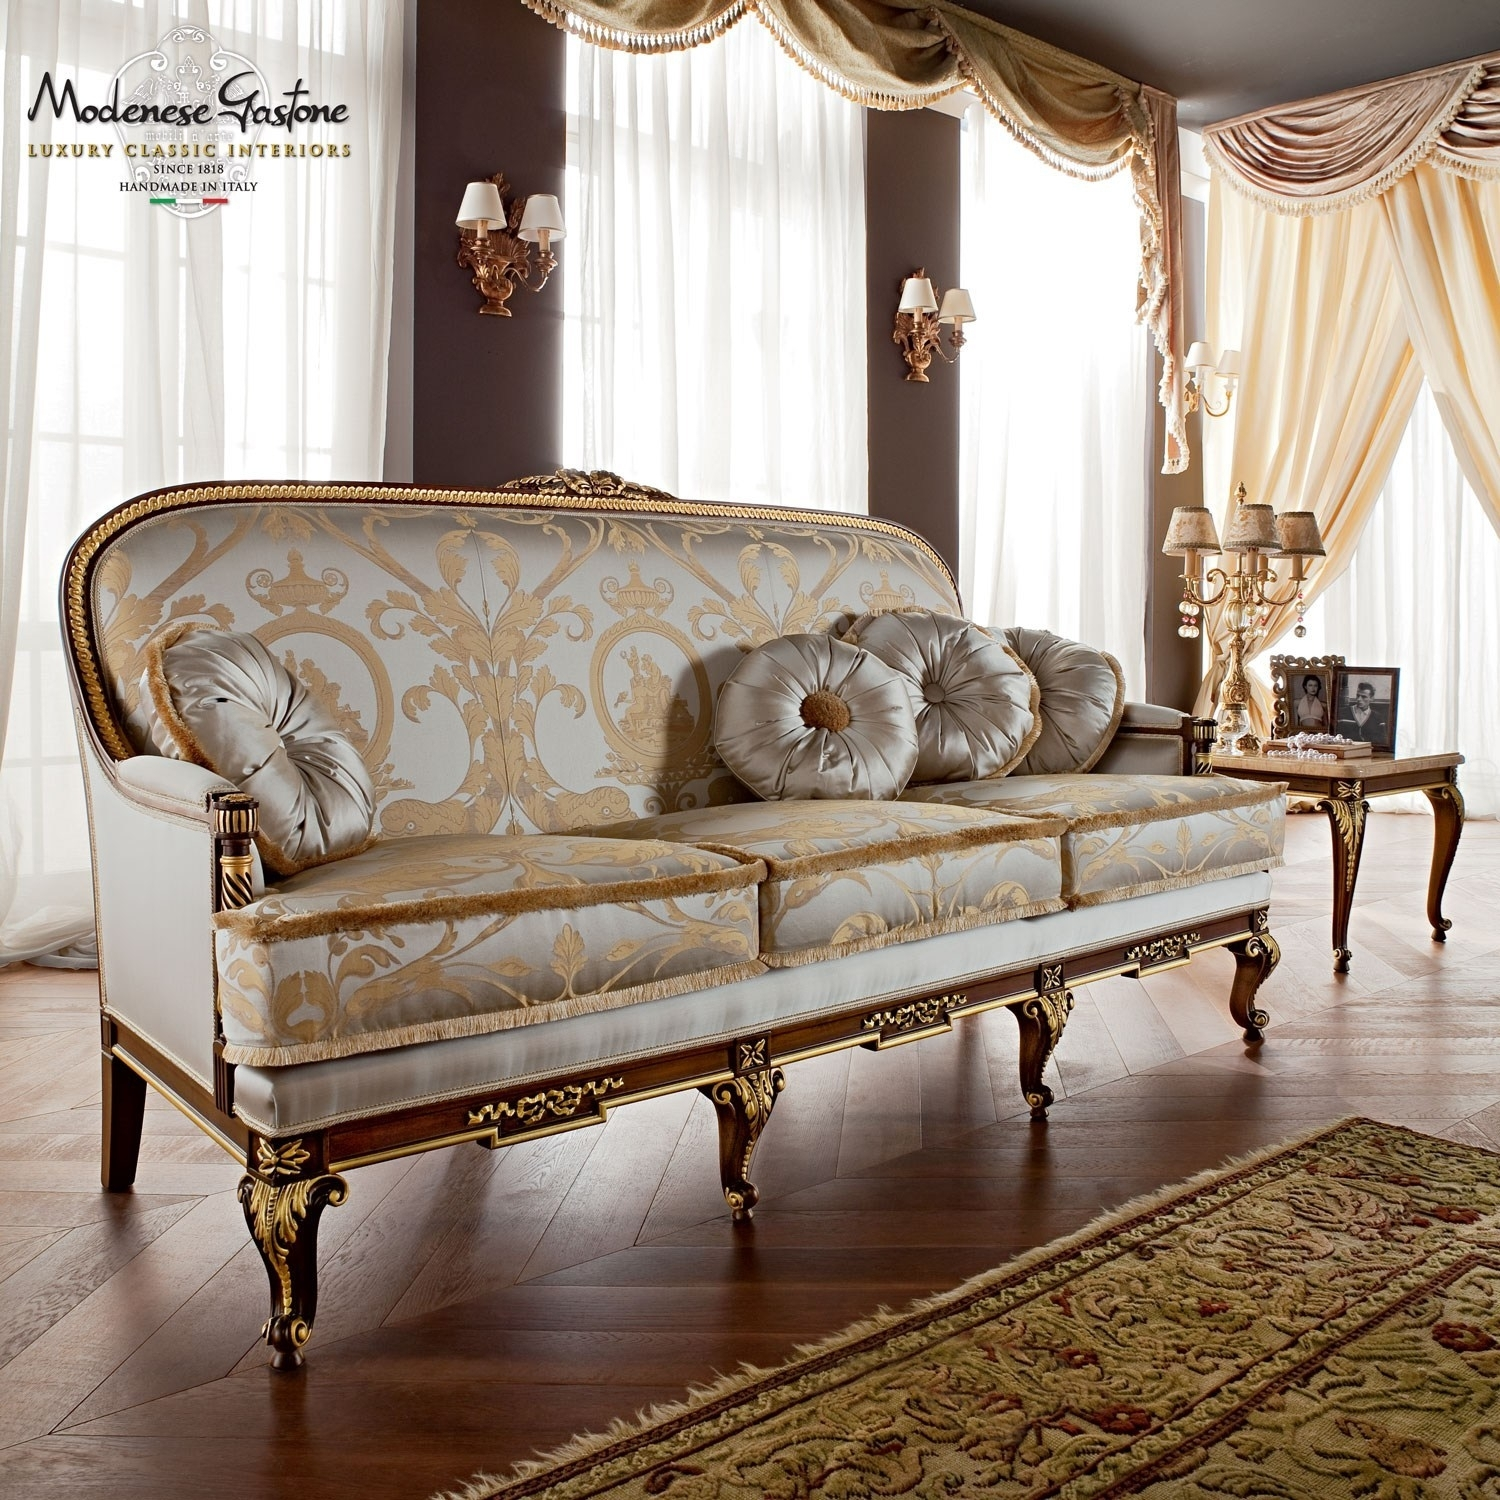 Luxury Classic Design Sofas Collection Upmarket Furniture Luxury Throughout Classic Sofas (Image 7 of 10)